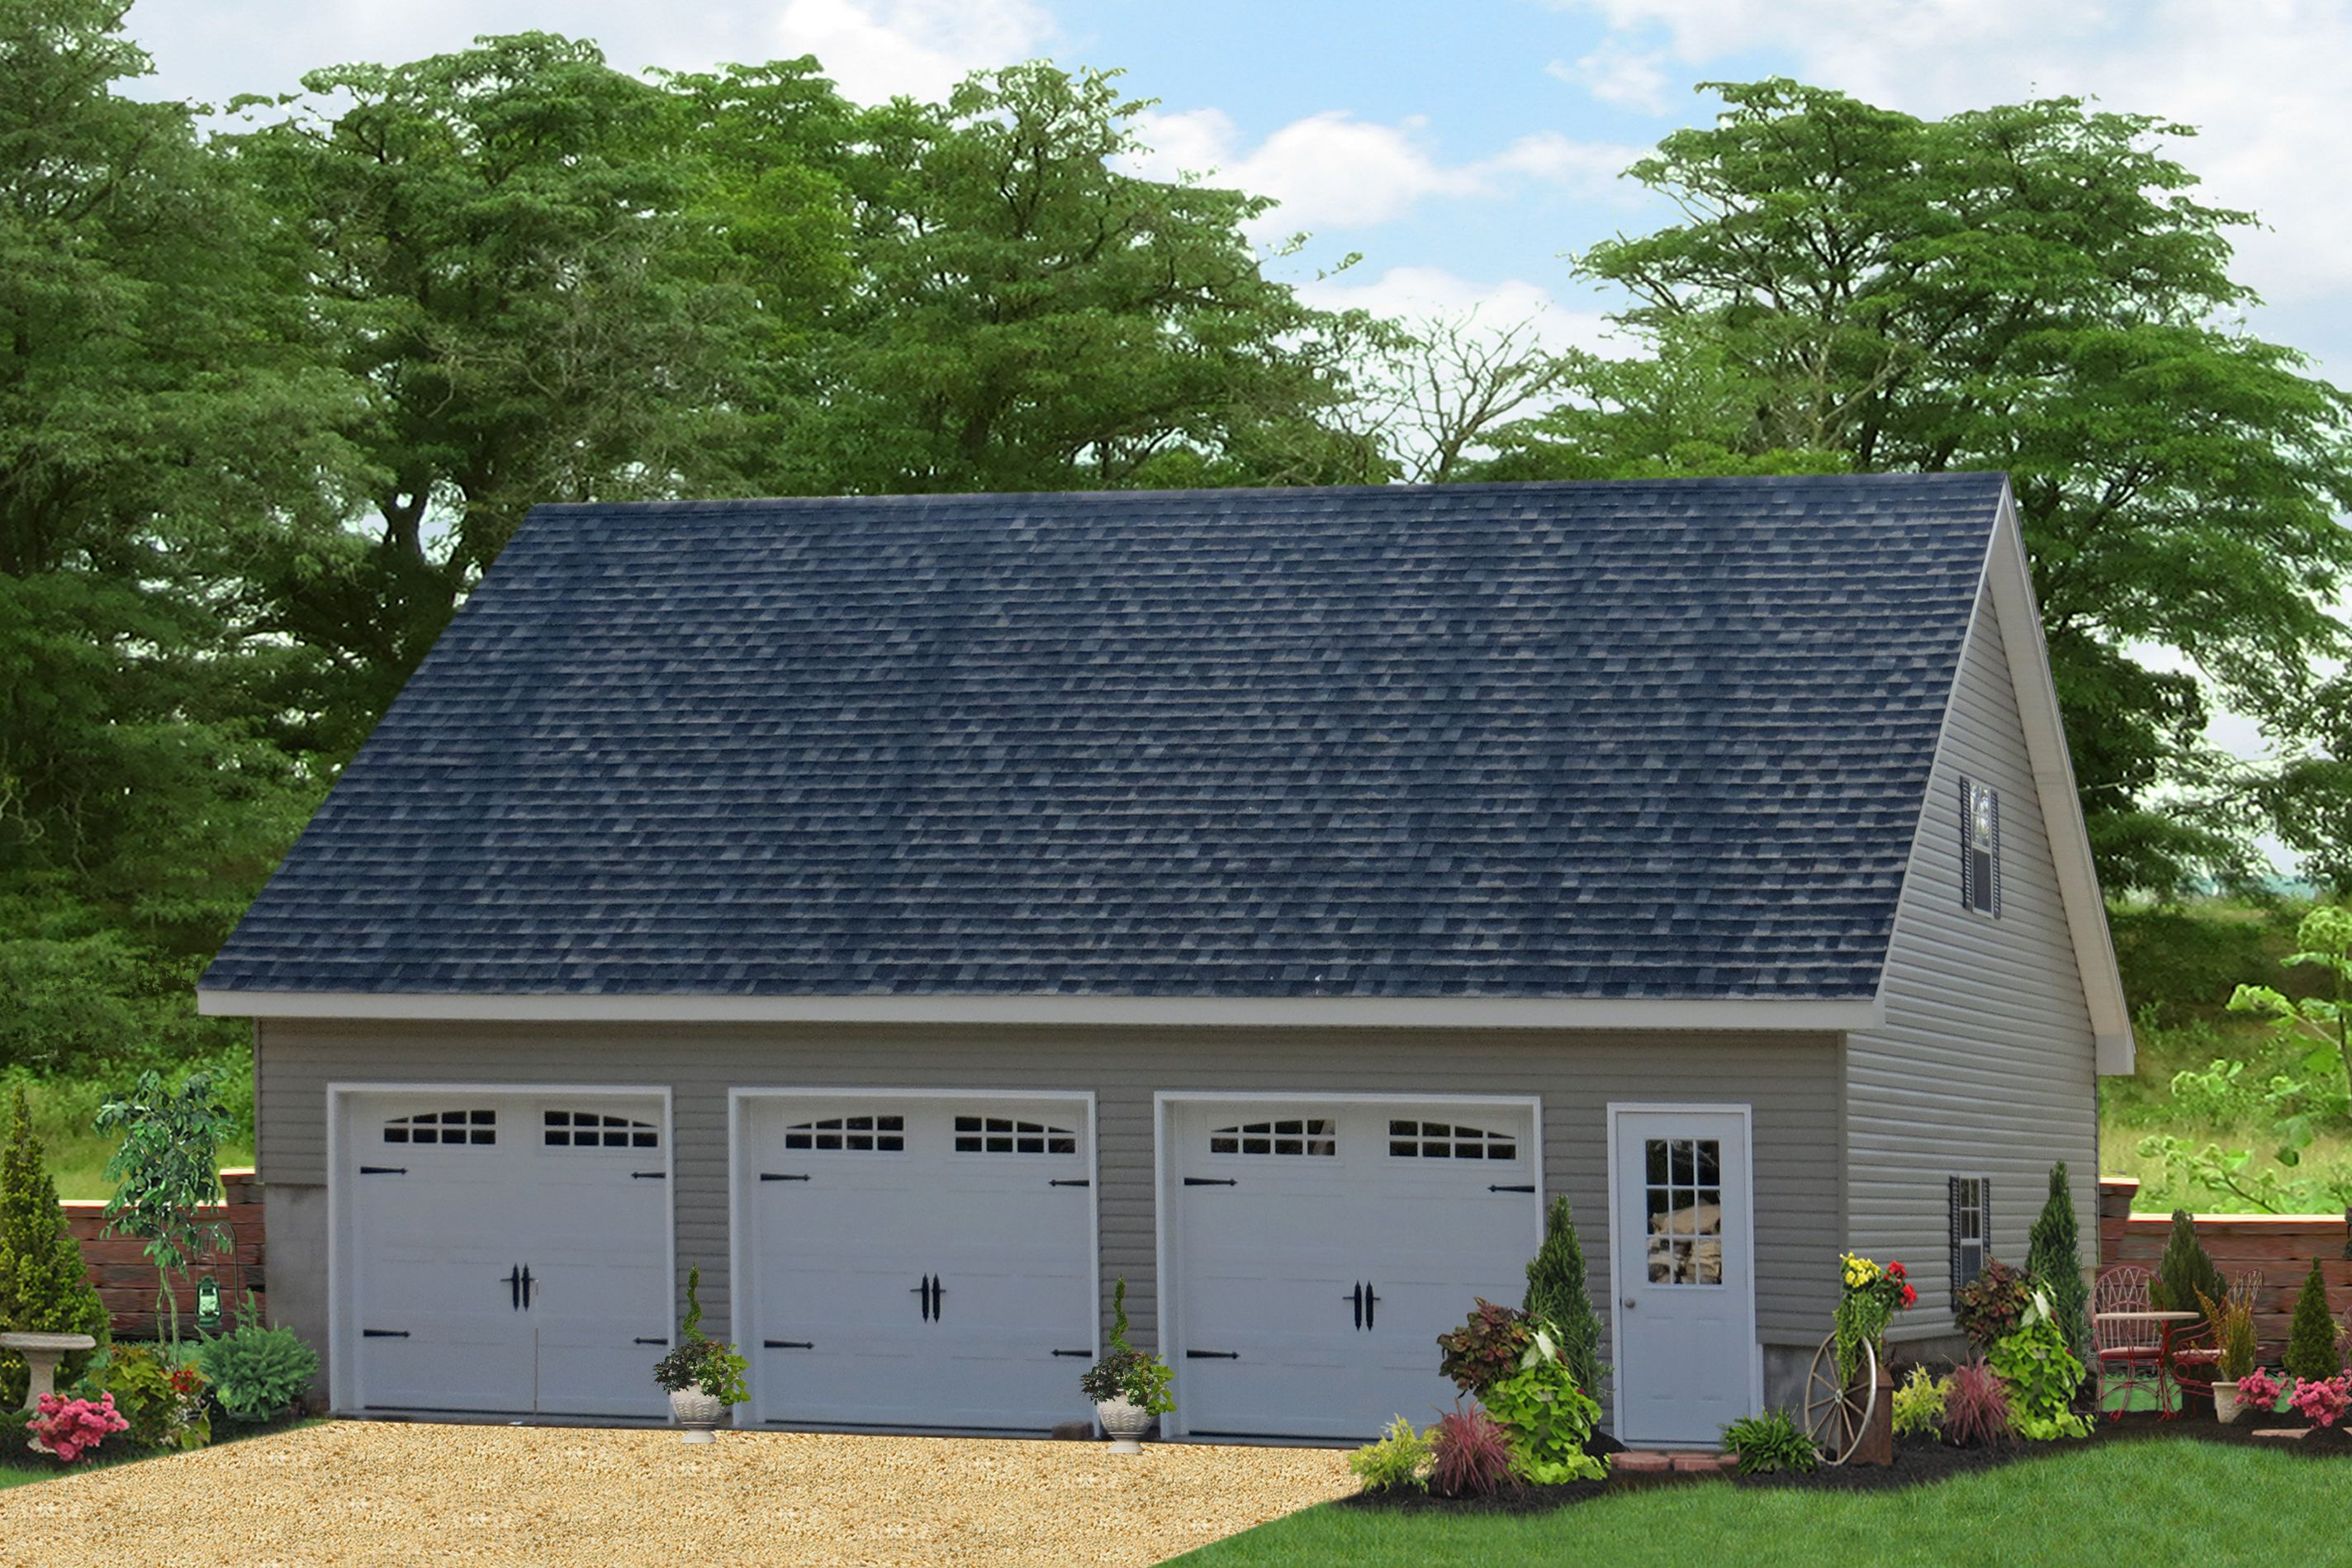 garage buildings builders amish custom lancaster pole pa built sheds elizabethtown at in located pinecreek designed dauphin structures